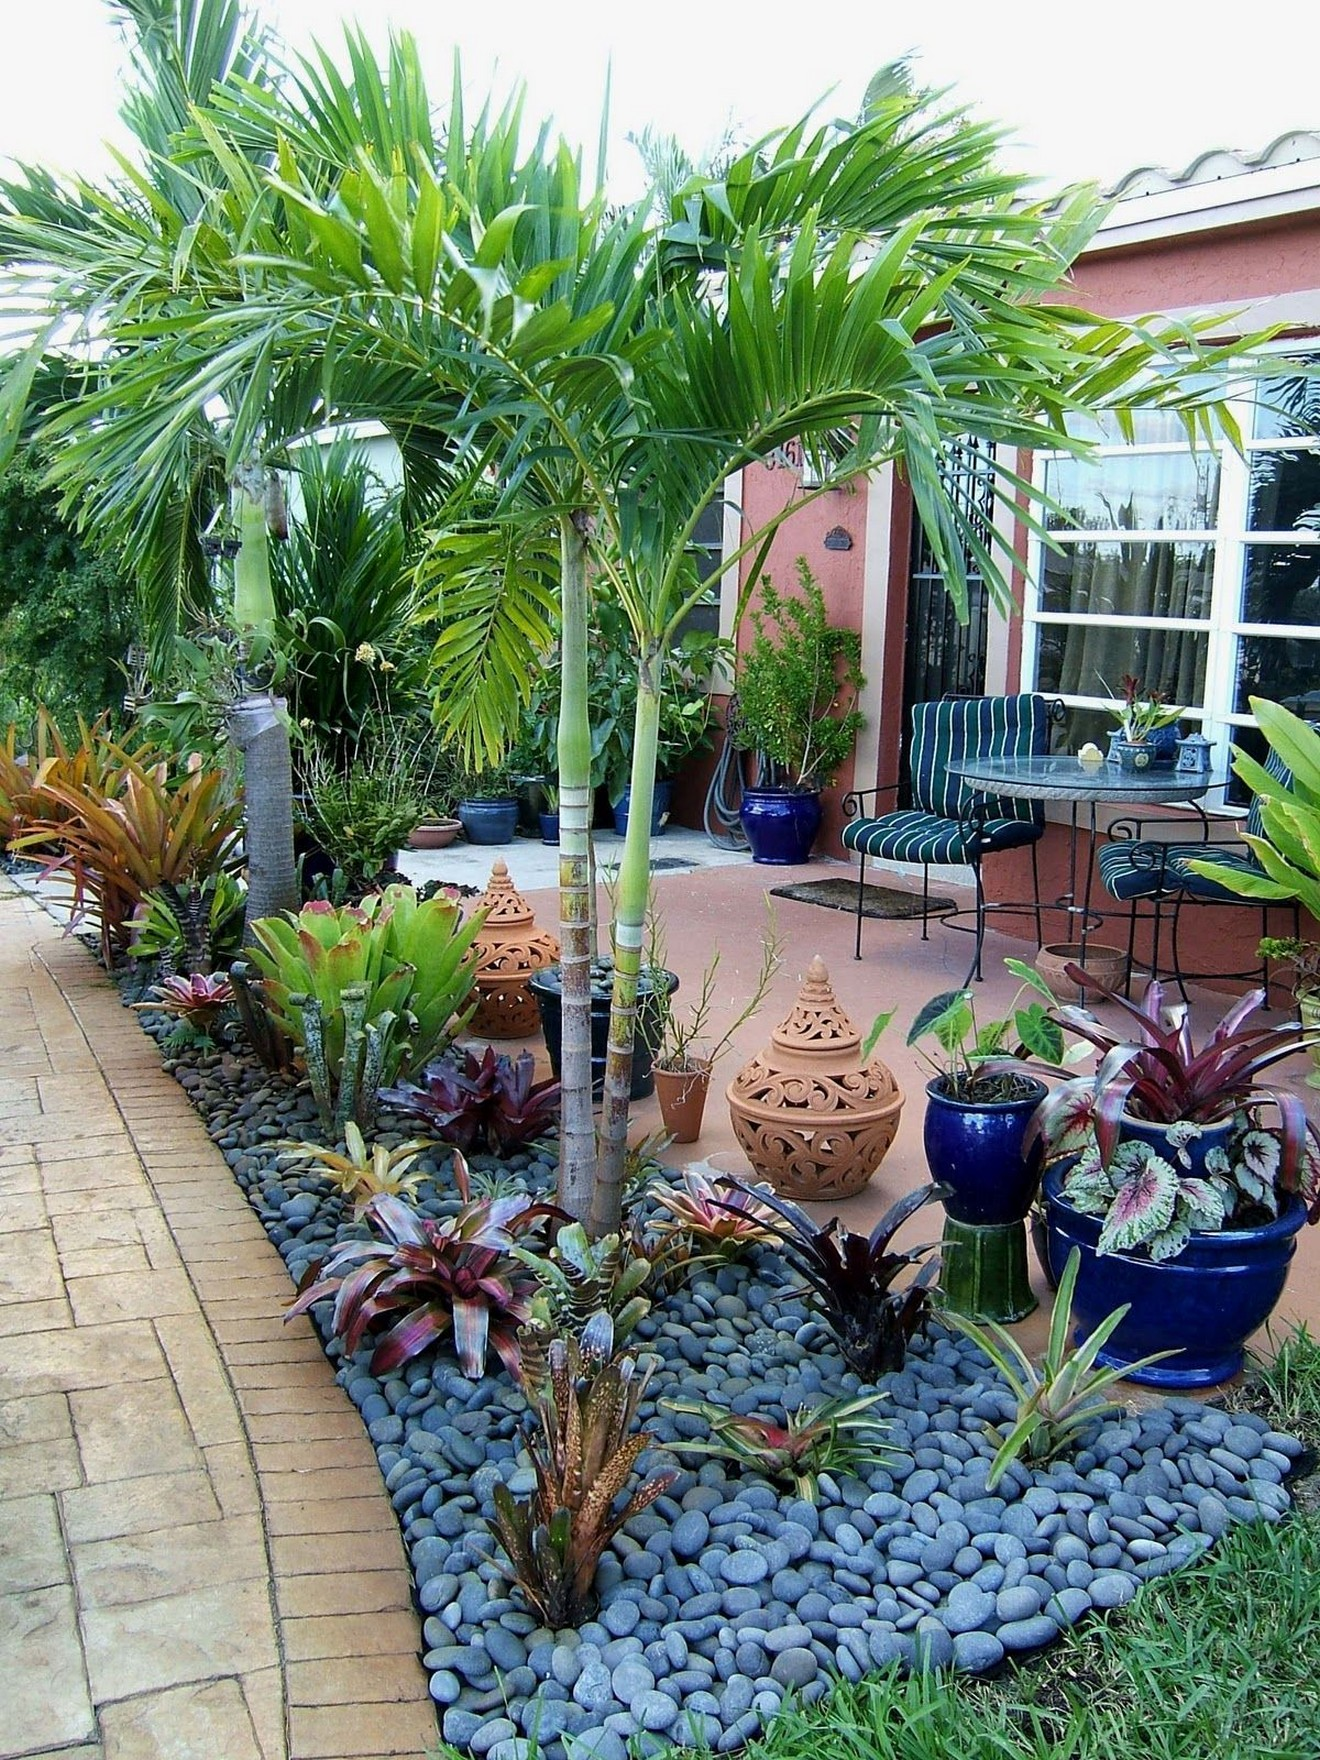 82 Five Great Backyard Landscaping Ideas Home Decor 74